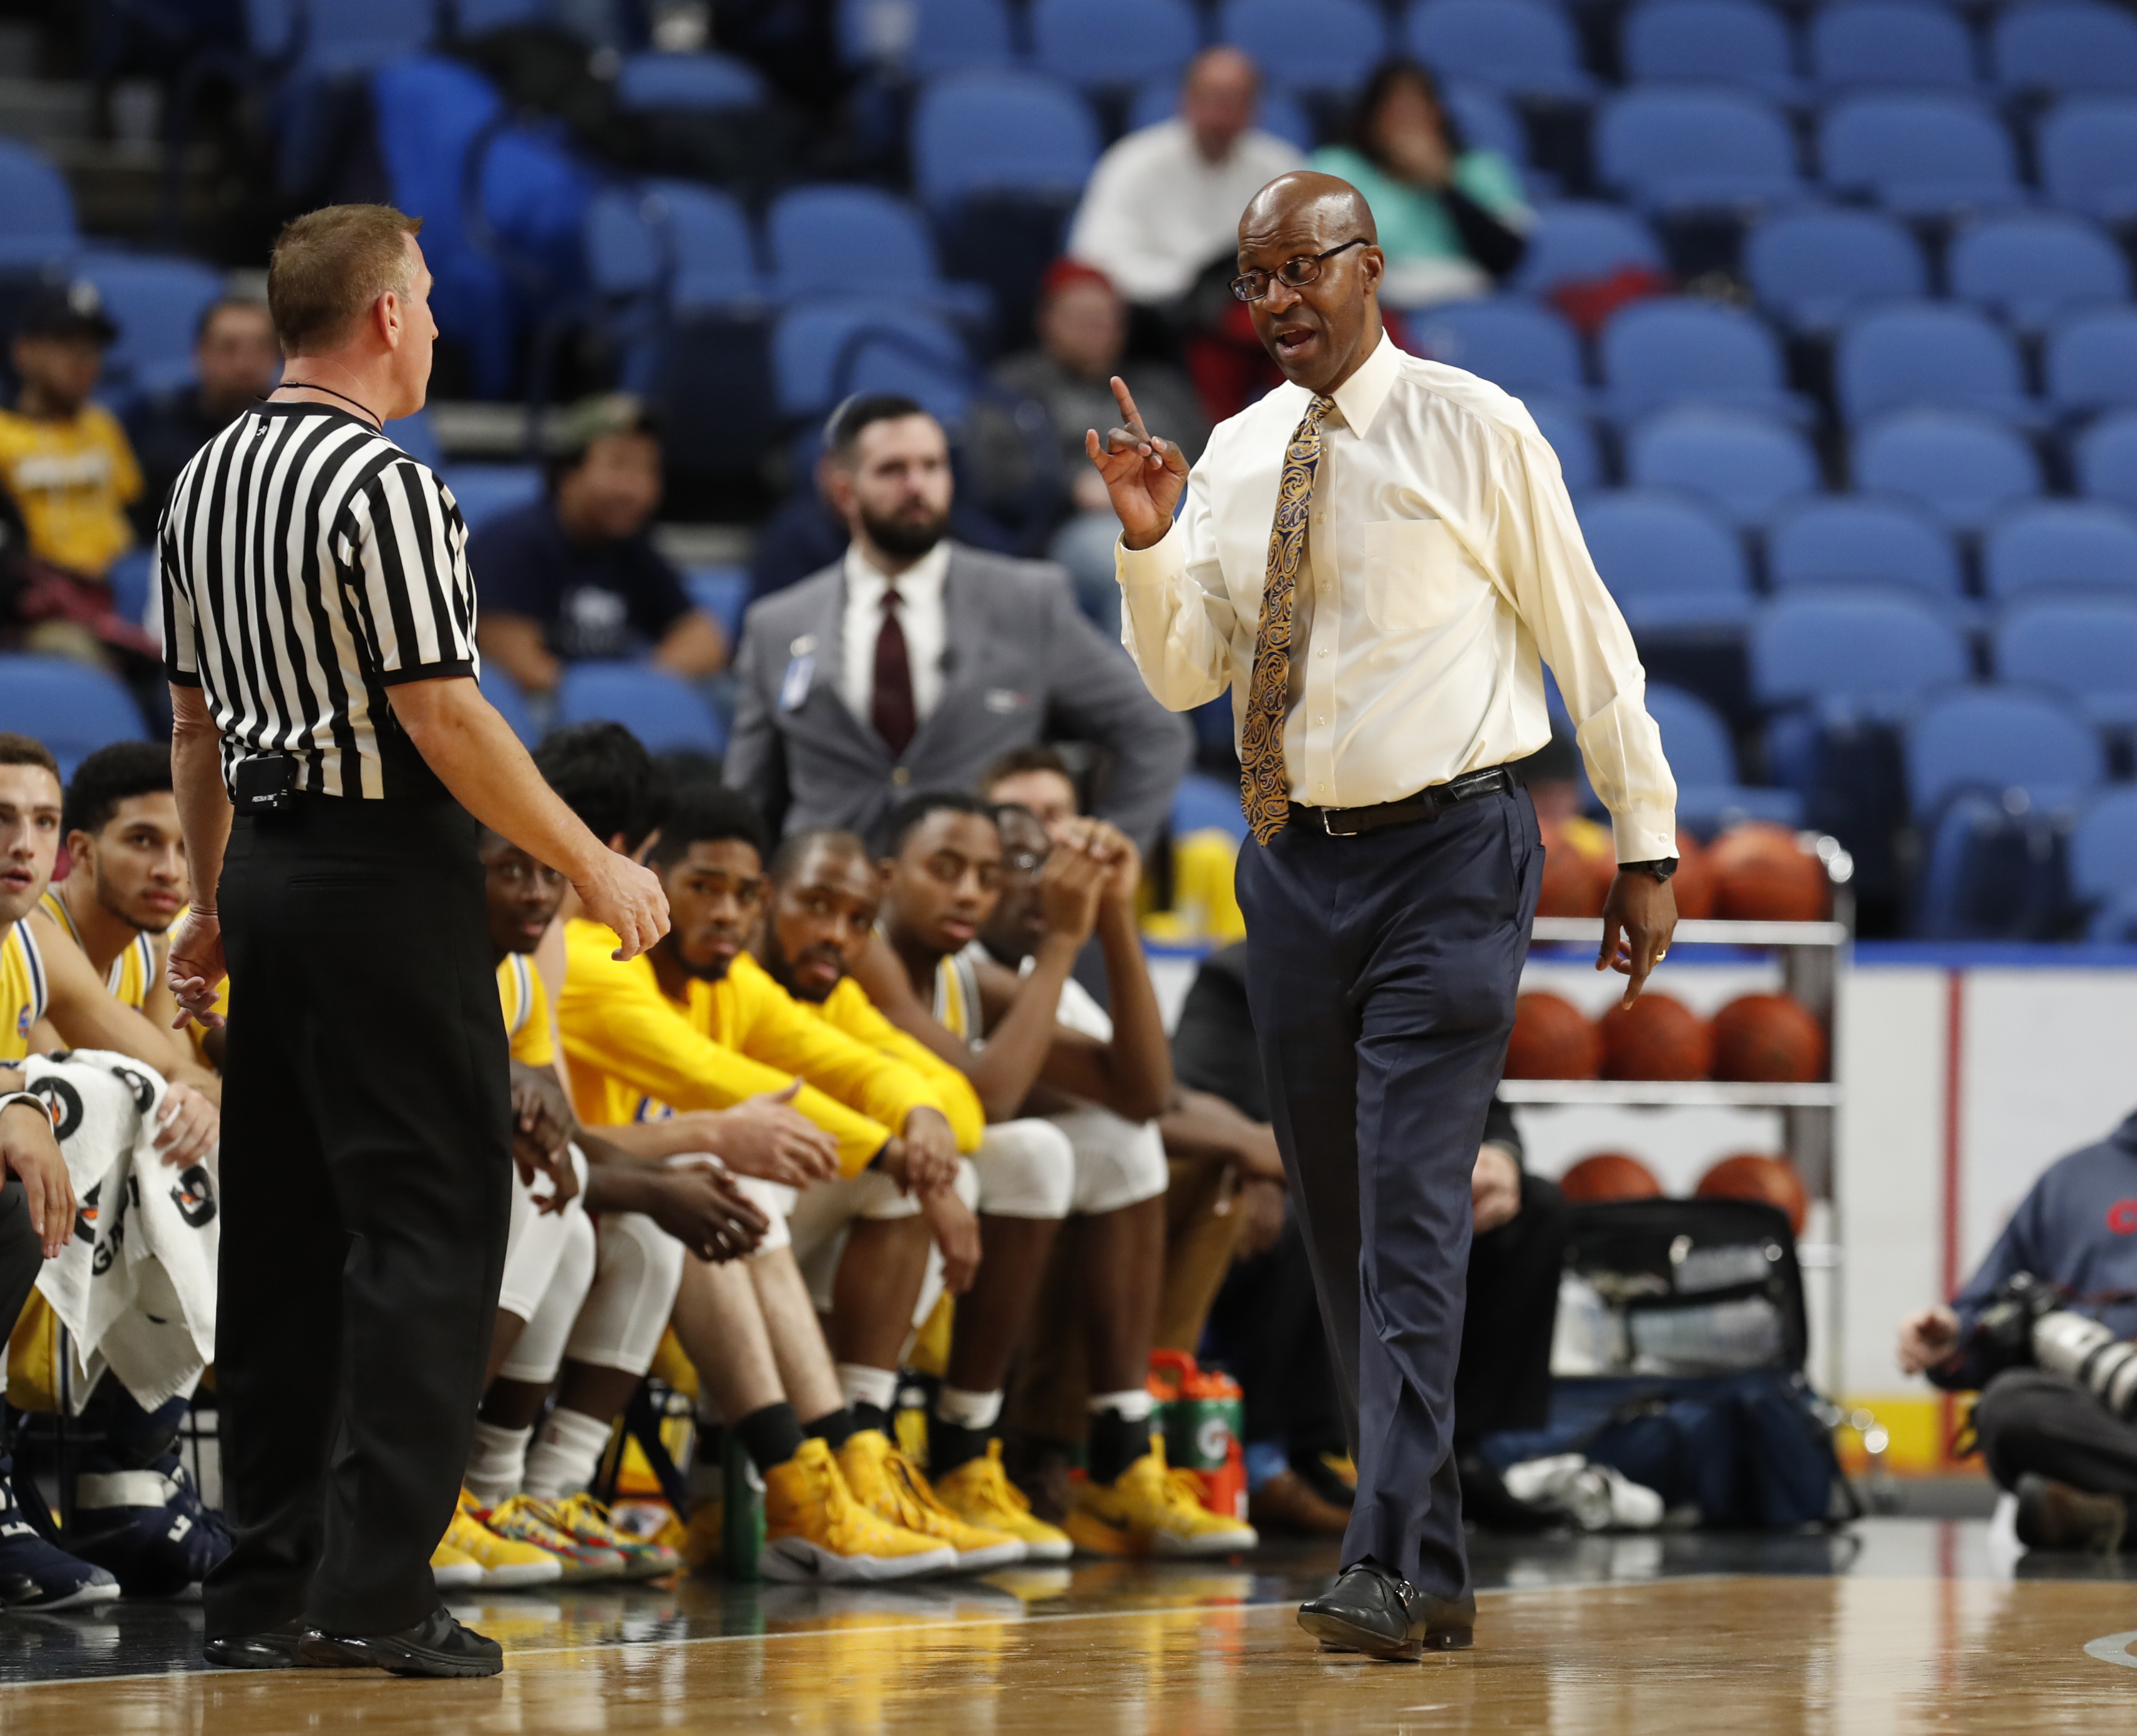 Canisius coach Reggie Witherspoon has a spirited conversation with an official against the  University at Buffalo during first half action at the Big 4 classic at the Key Bank Center on Saturday, Dec. 17, 2016. (Harry Scull Jr./Buffalo News)